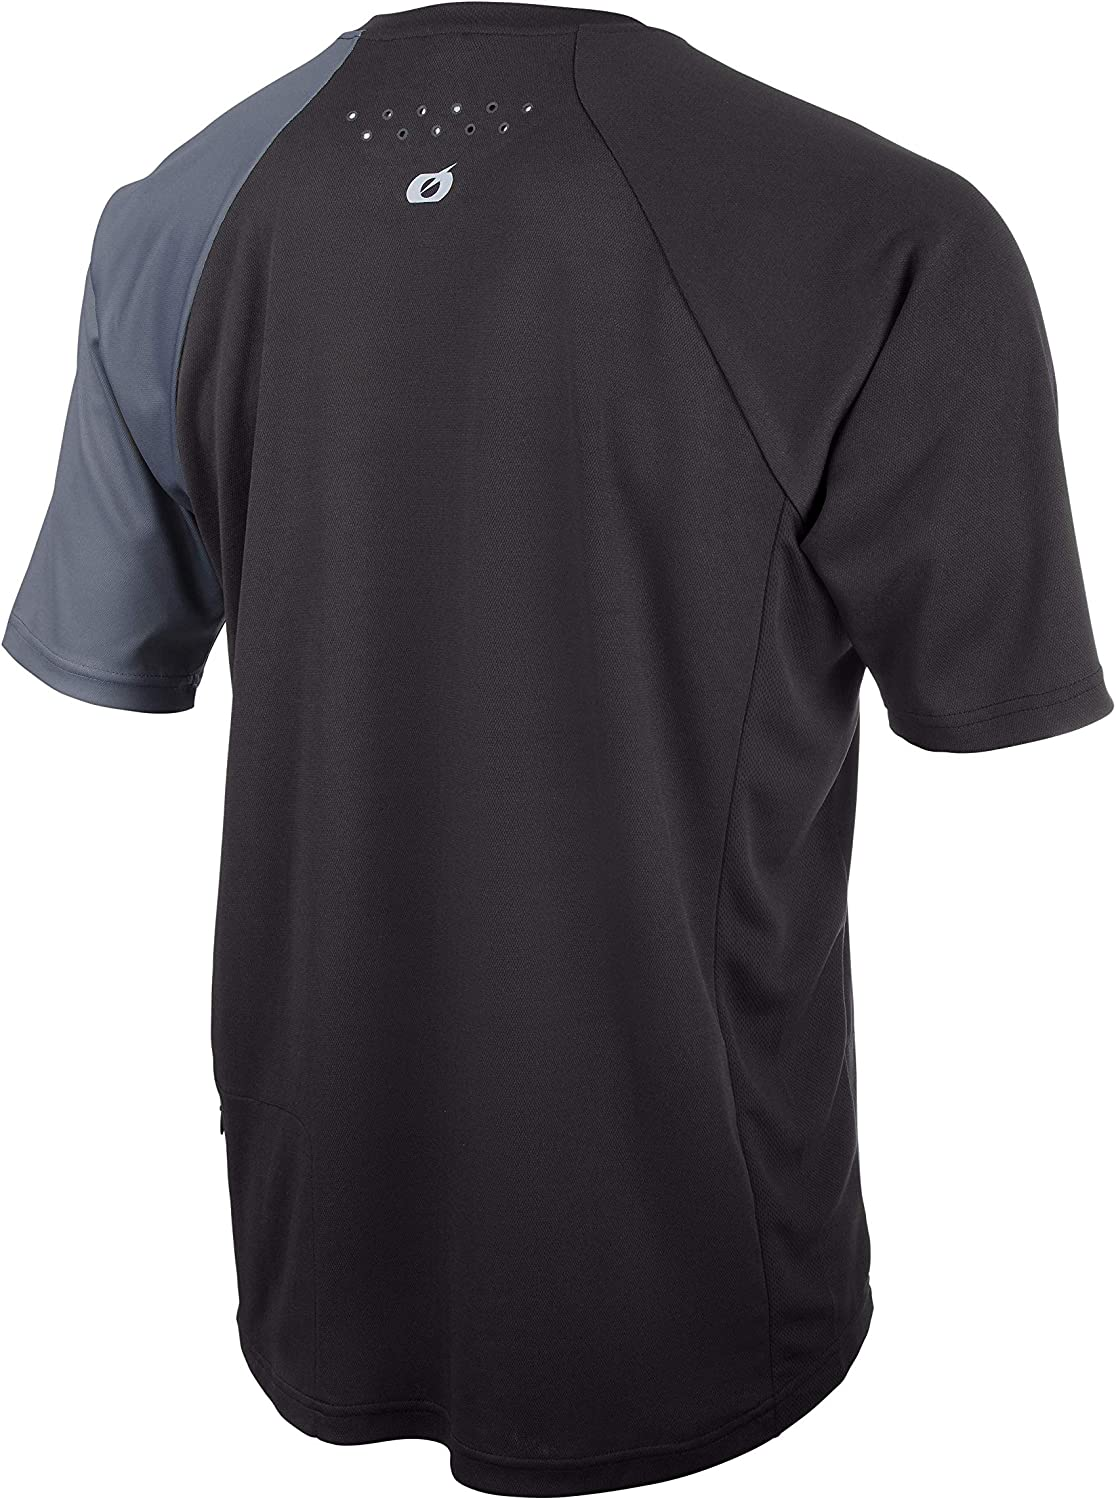 Medium ONeal unisex-adult PIN IT Cycling Jersey Black//Gray